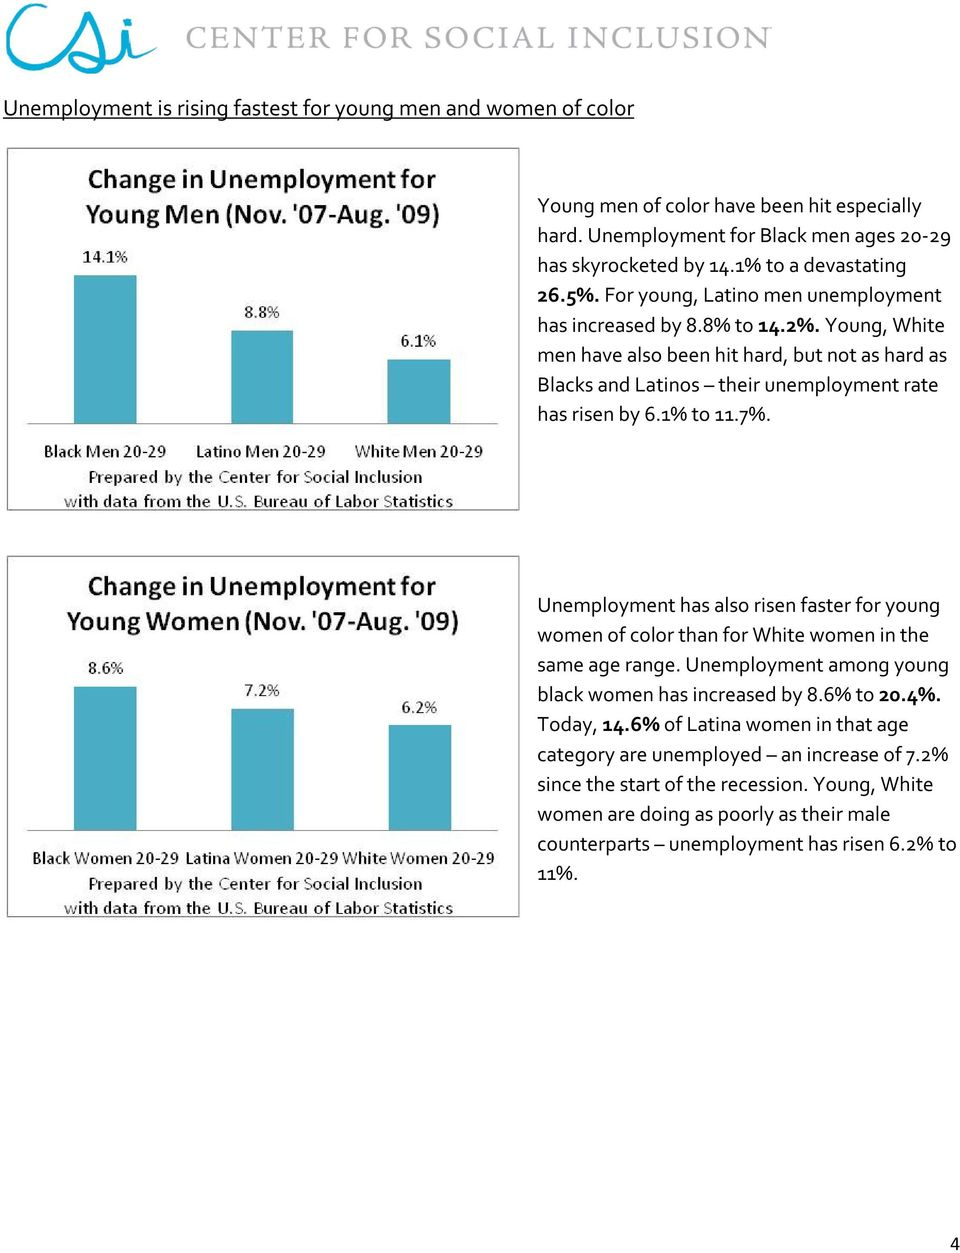 7%. Unemployment has also risen faster for young women of color than for White women in the same age range. Unemployment among young black women has increased by 8.6% to 20.4%. Today, 14.